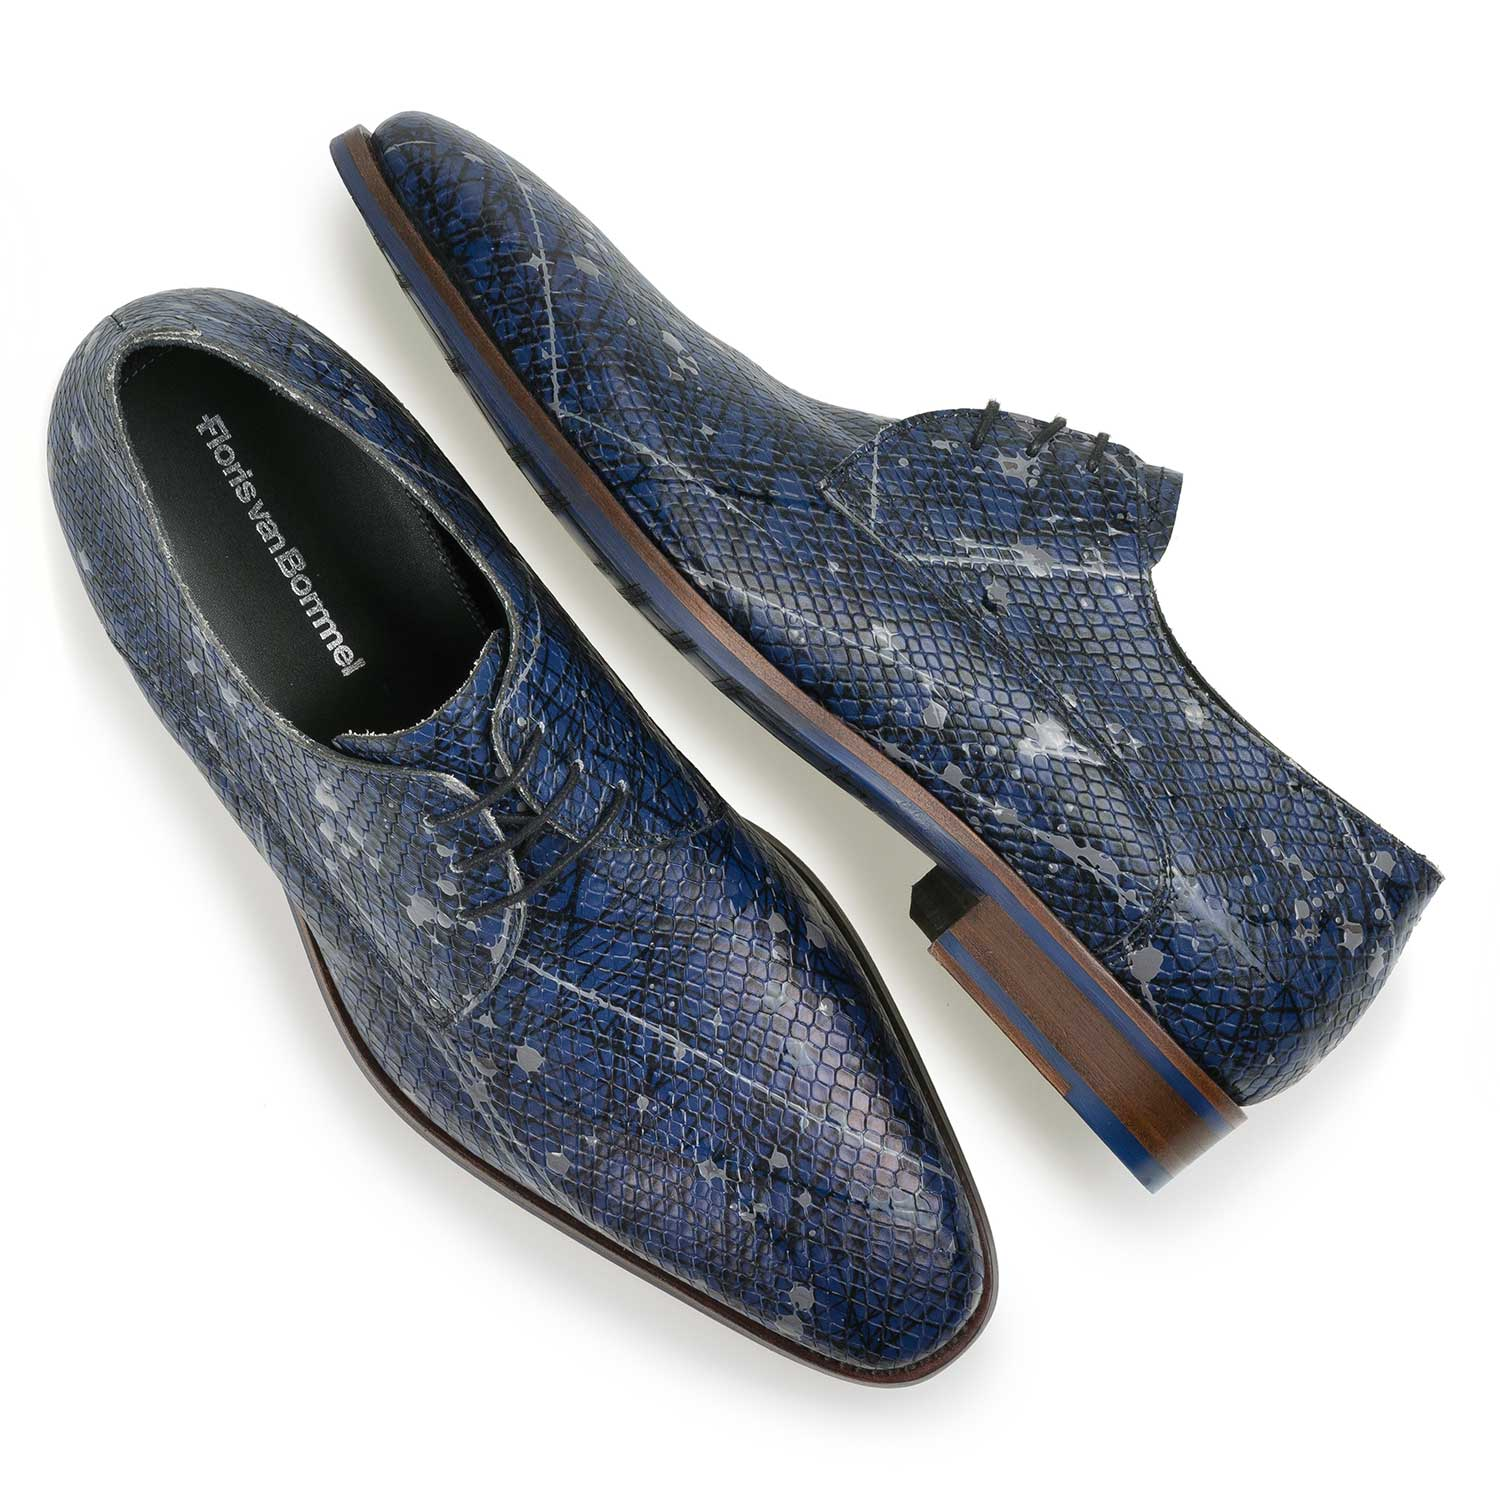 18091/01 - Blue printed calf leather lace shoe